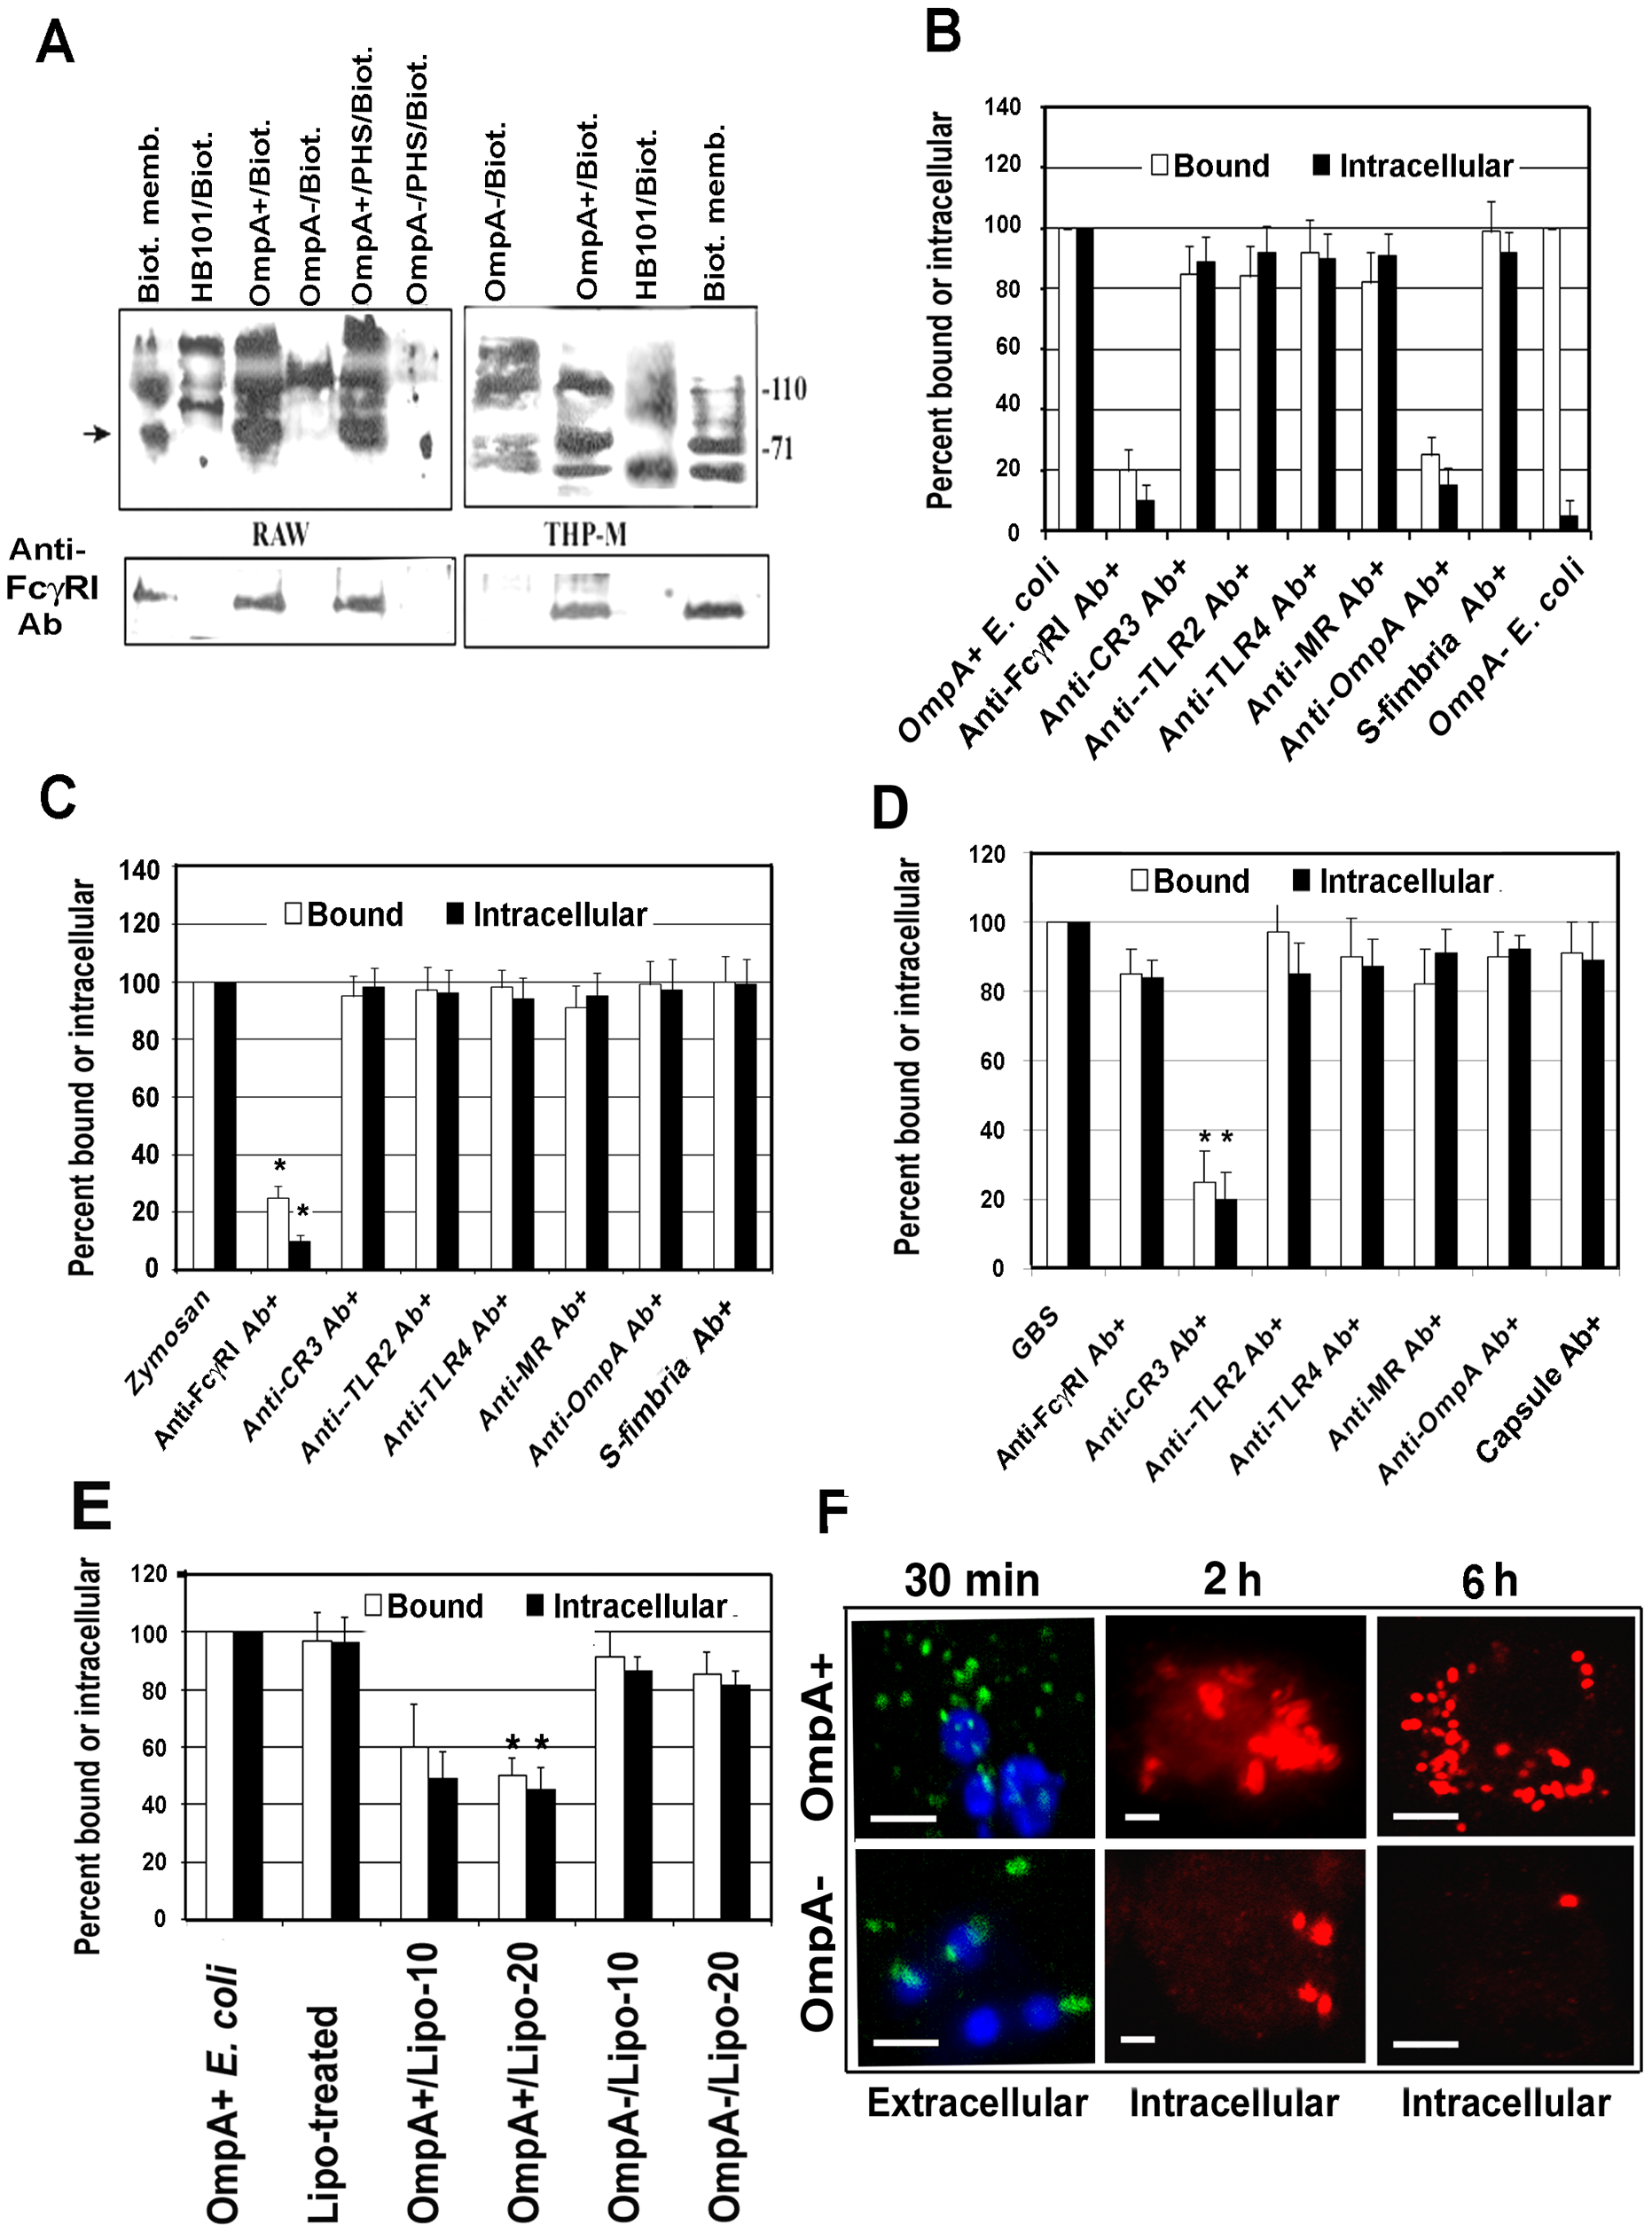 OmpA interaction with FcγRIa is necessary for binding to, and entry of, <i>E. coli</i> K1 in RAW 264.7 cells.